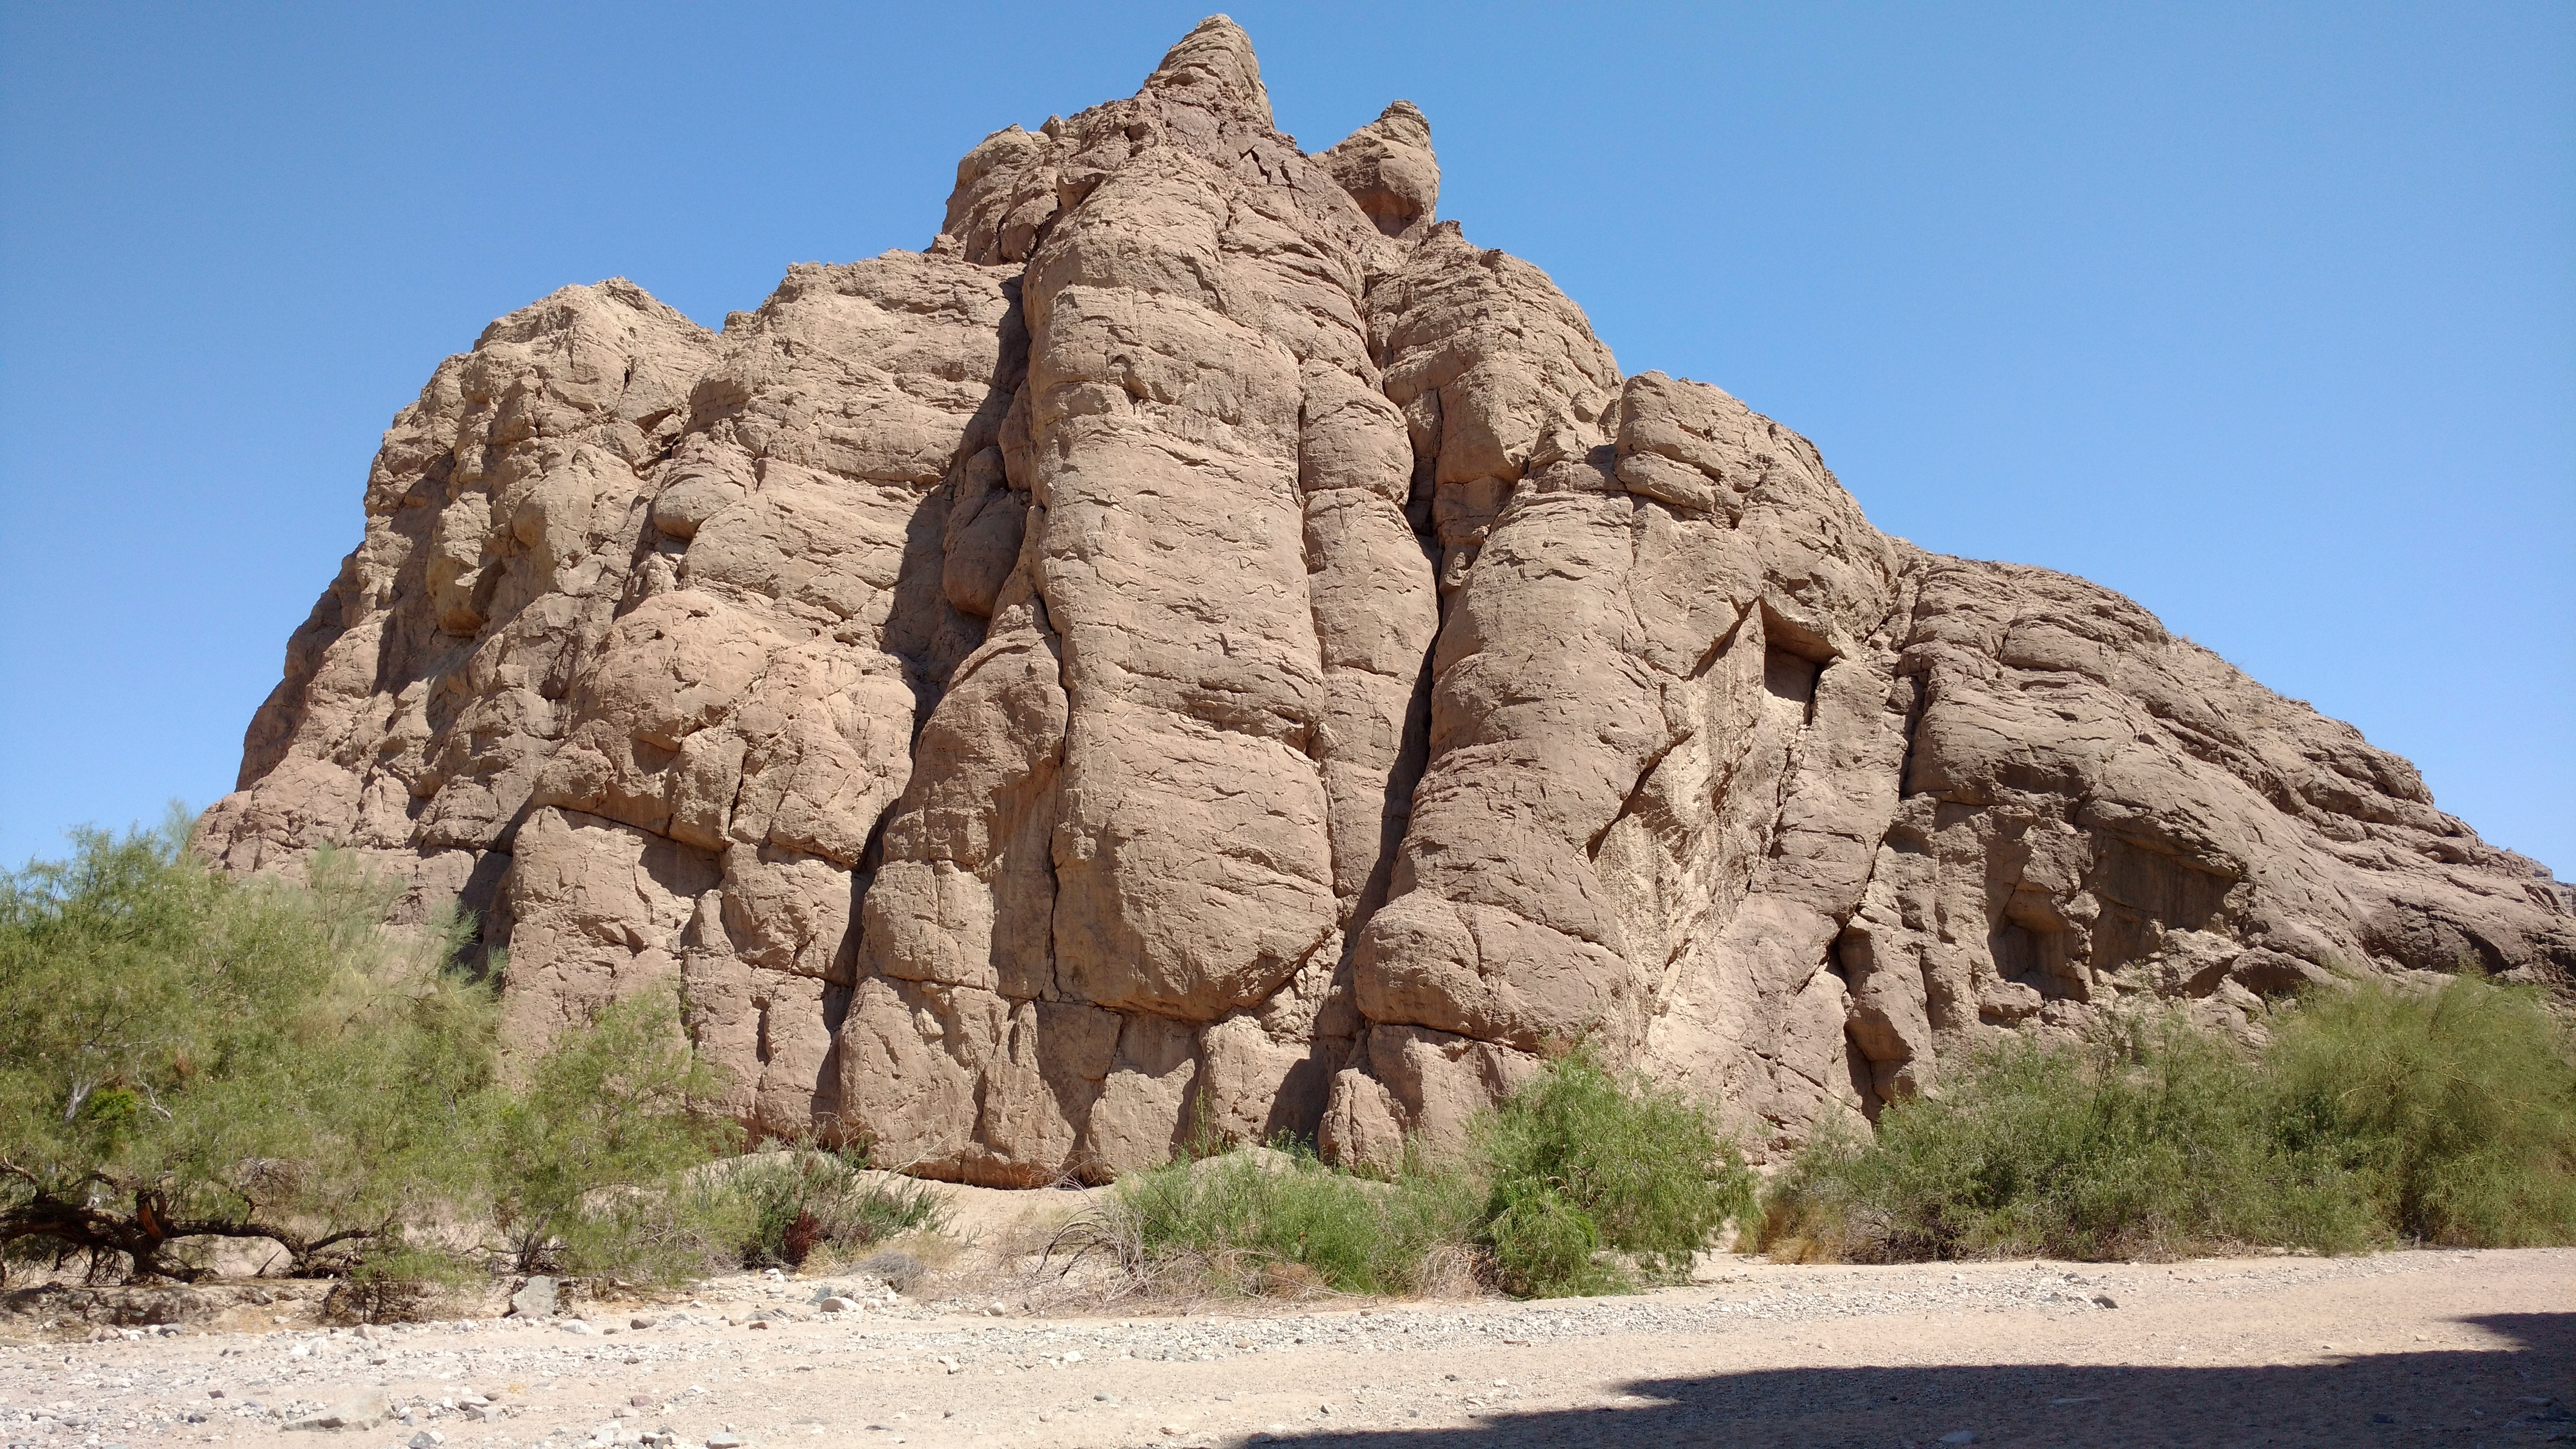 Mountain of rock desert in california